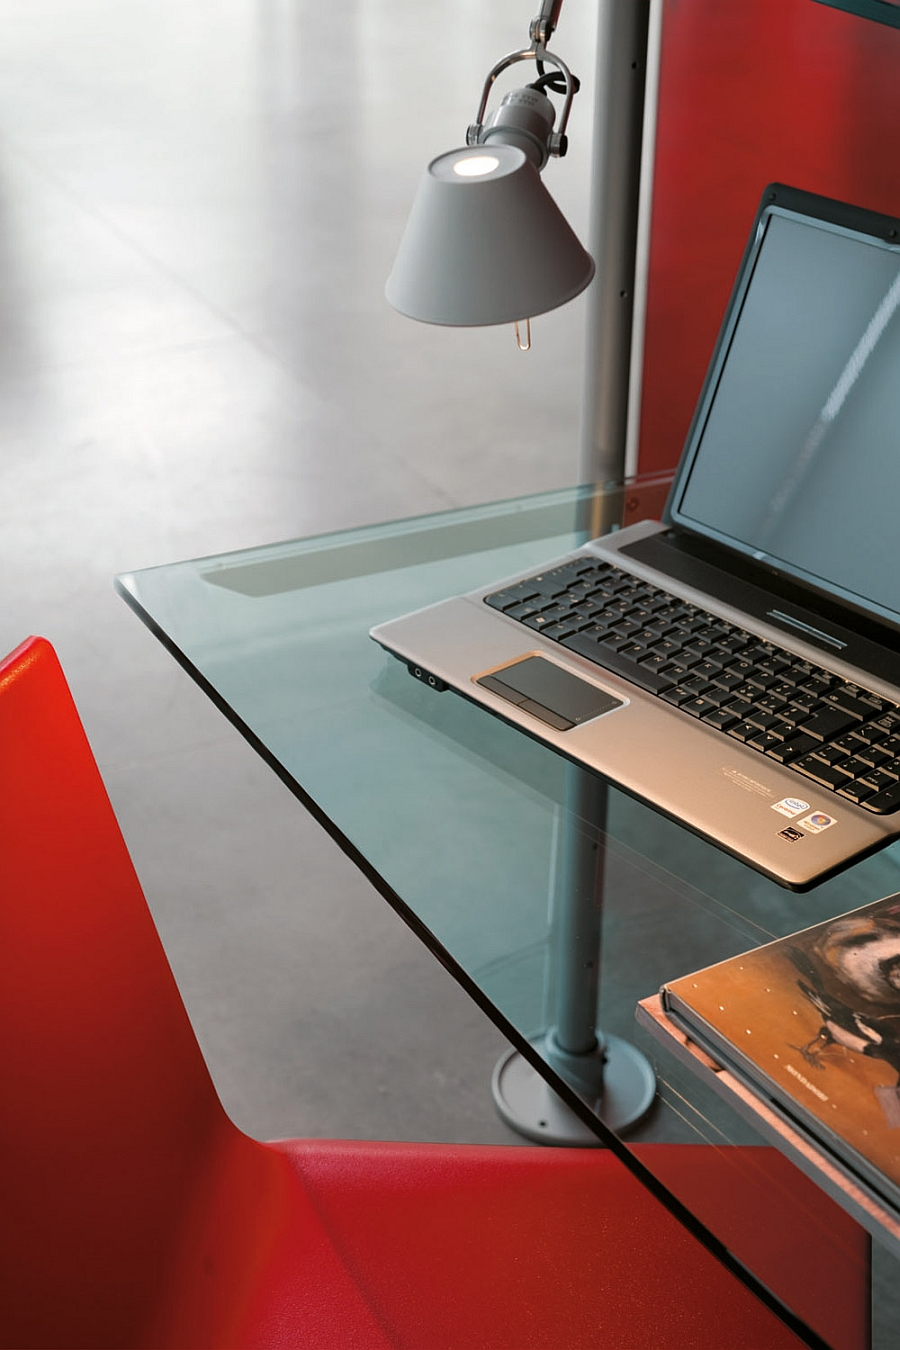 Ergonomic home workstation design combined with wall system